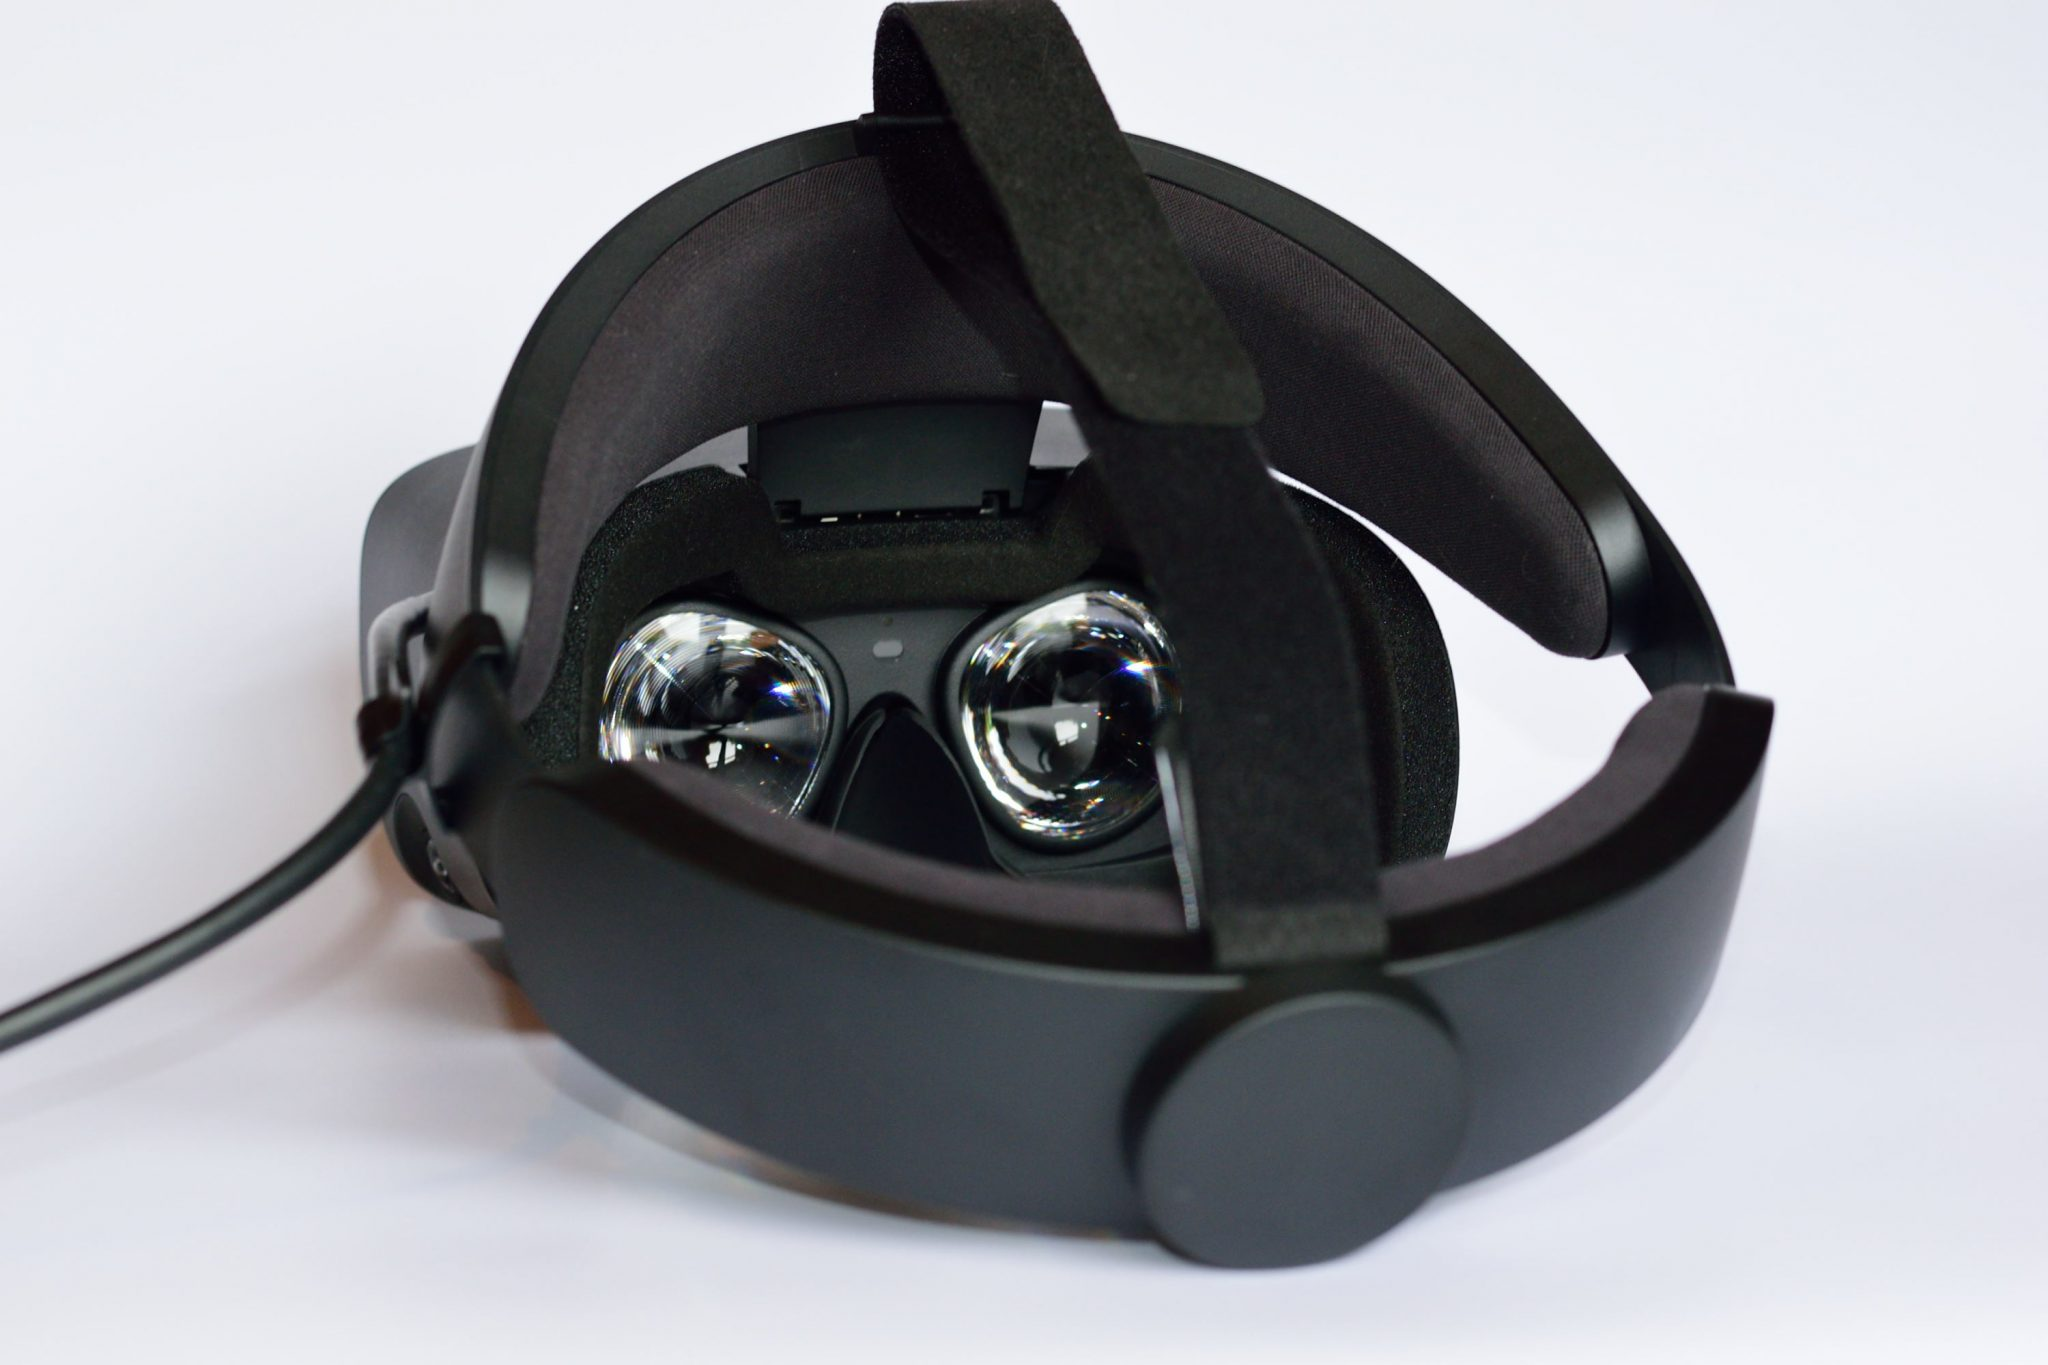 A rear view of the Oculus Rift S headset showing the strap, padding and lenses.